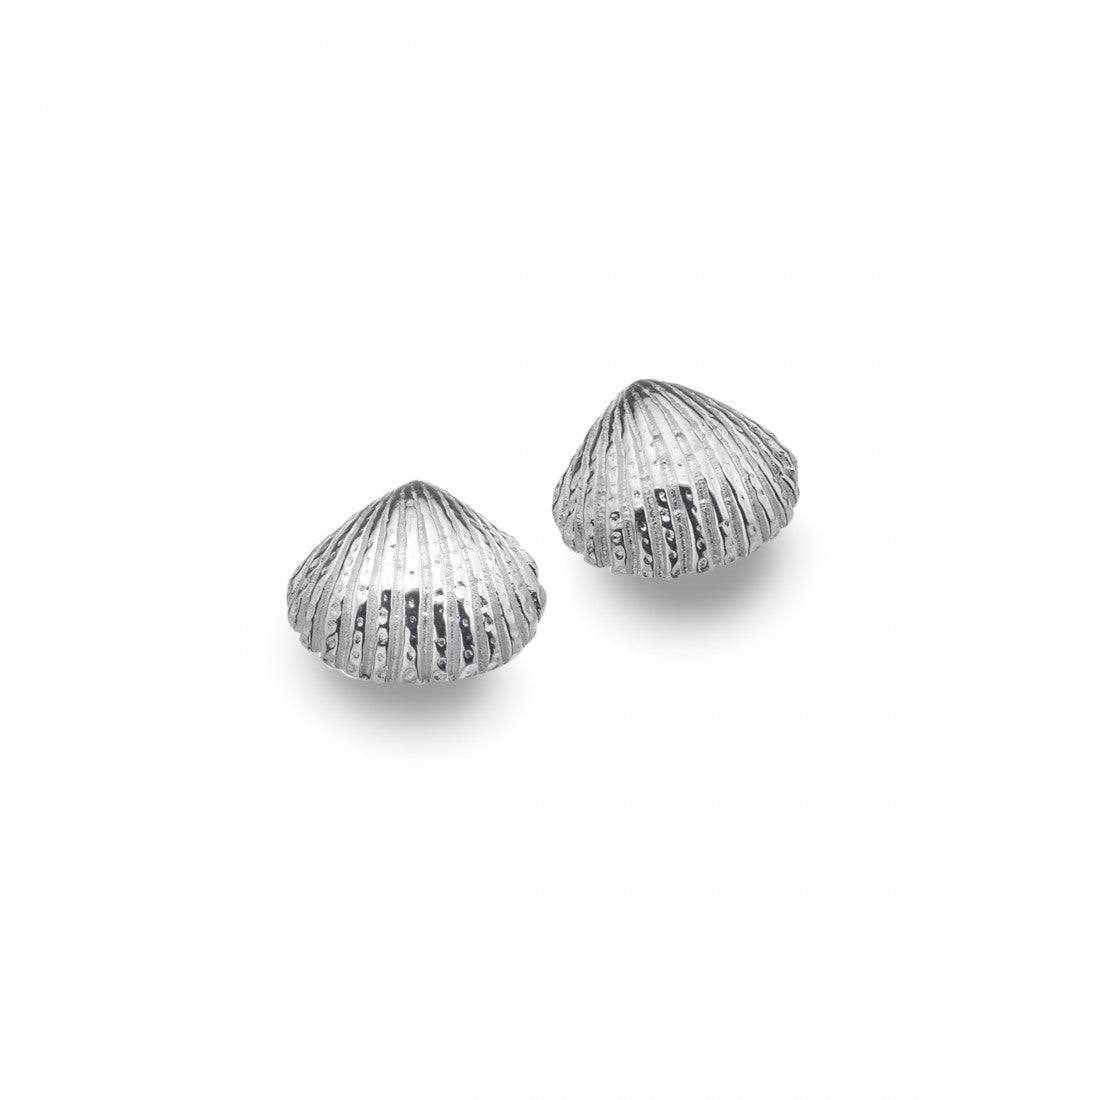 Scallop Shell Stud Earrings In Sterling Silver